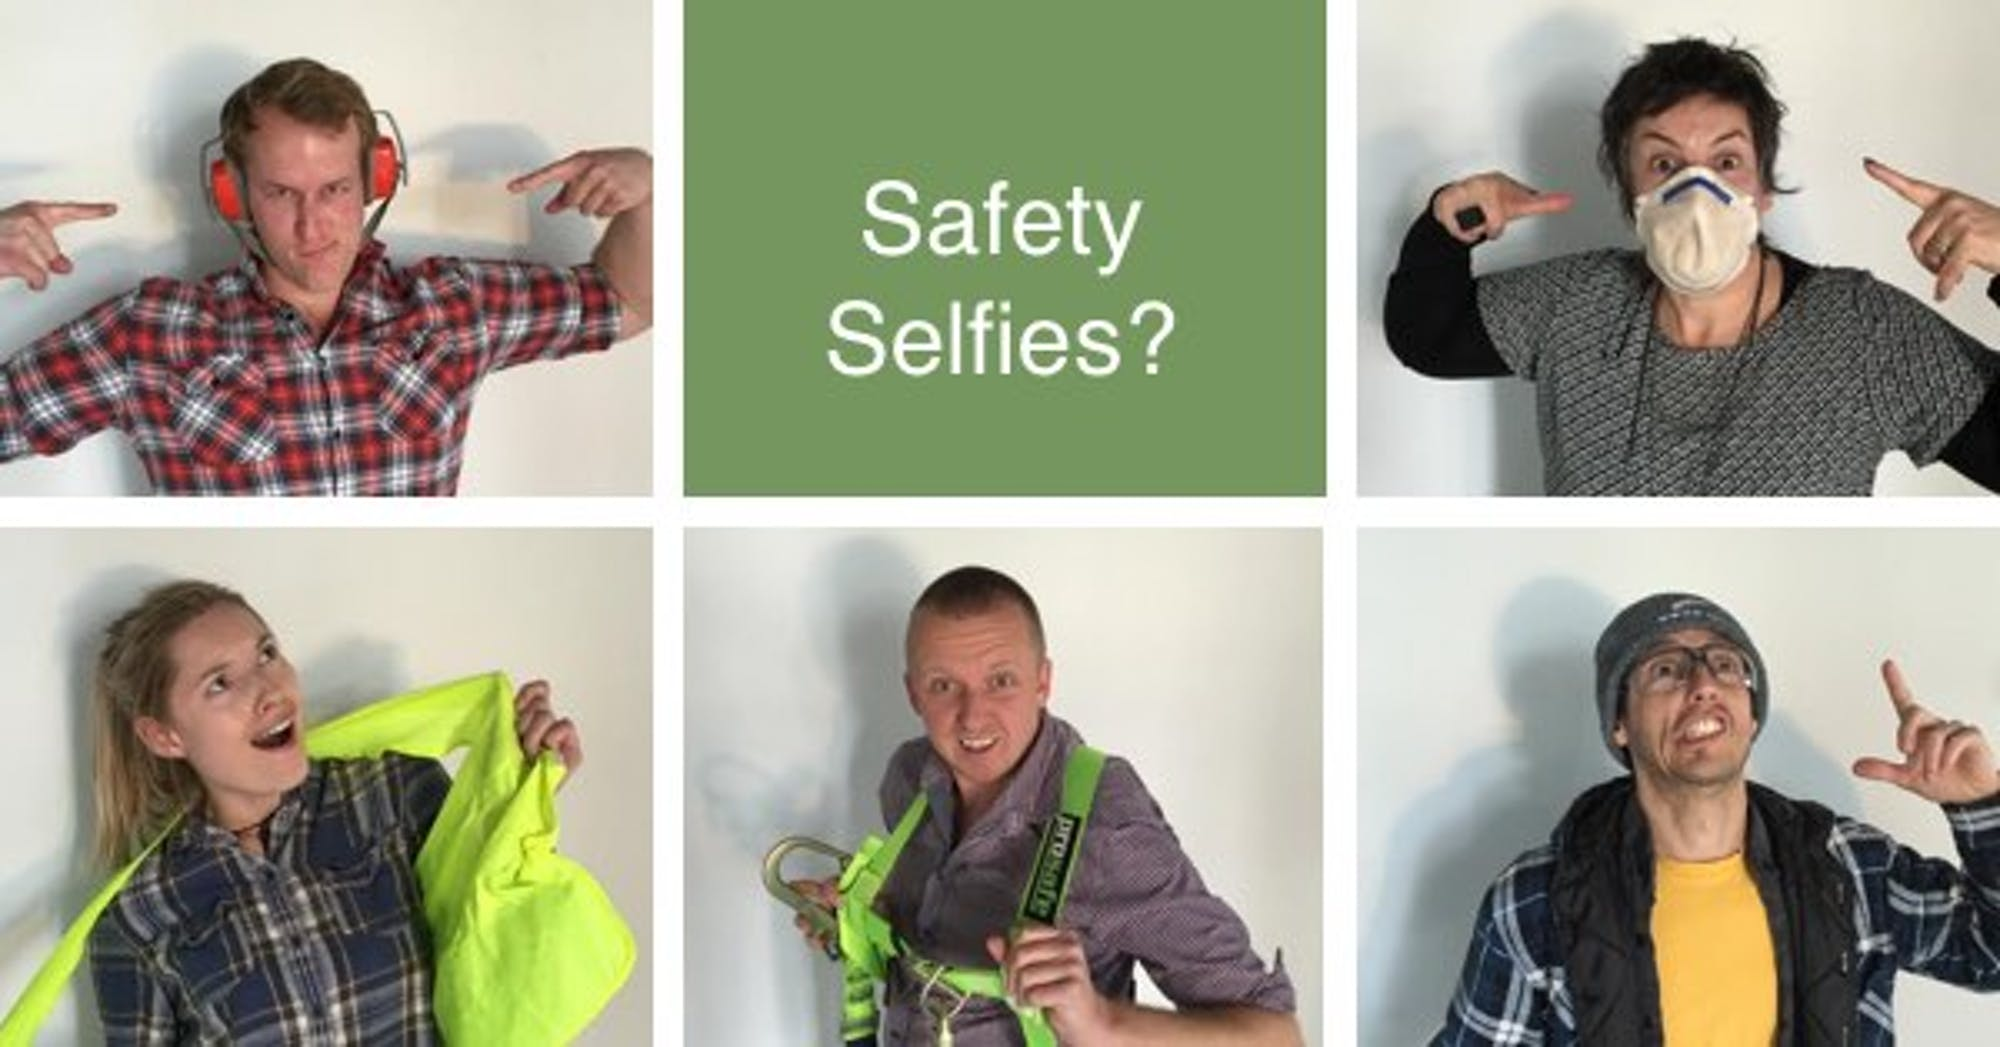 Making health and safety fun gets results